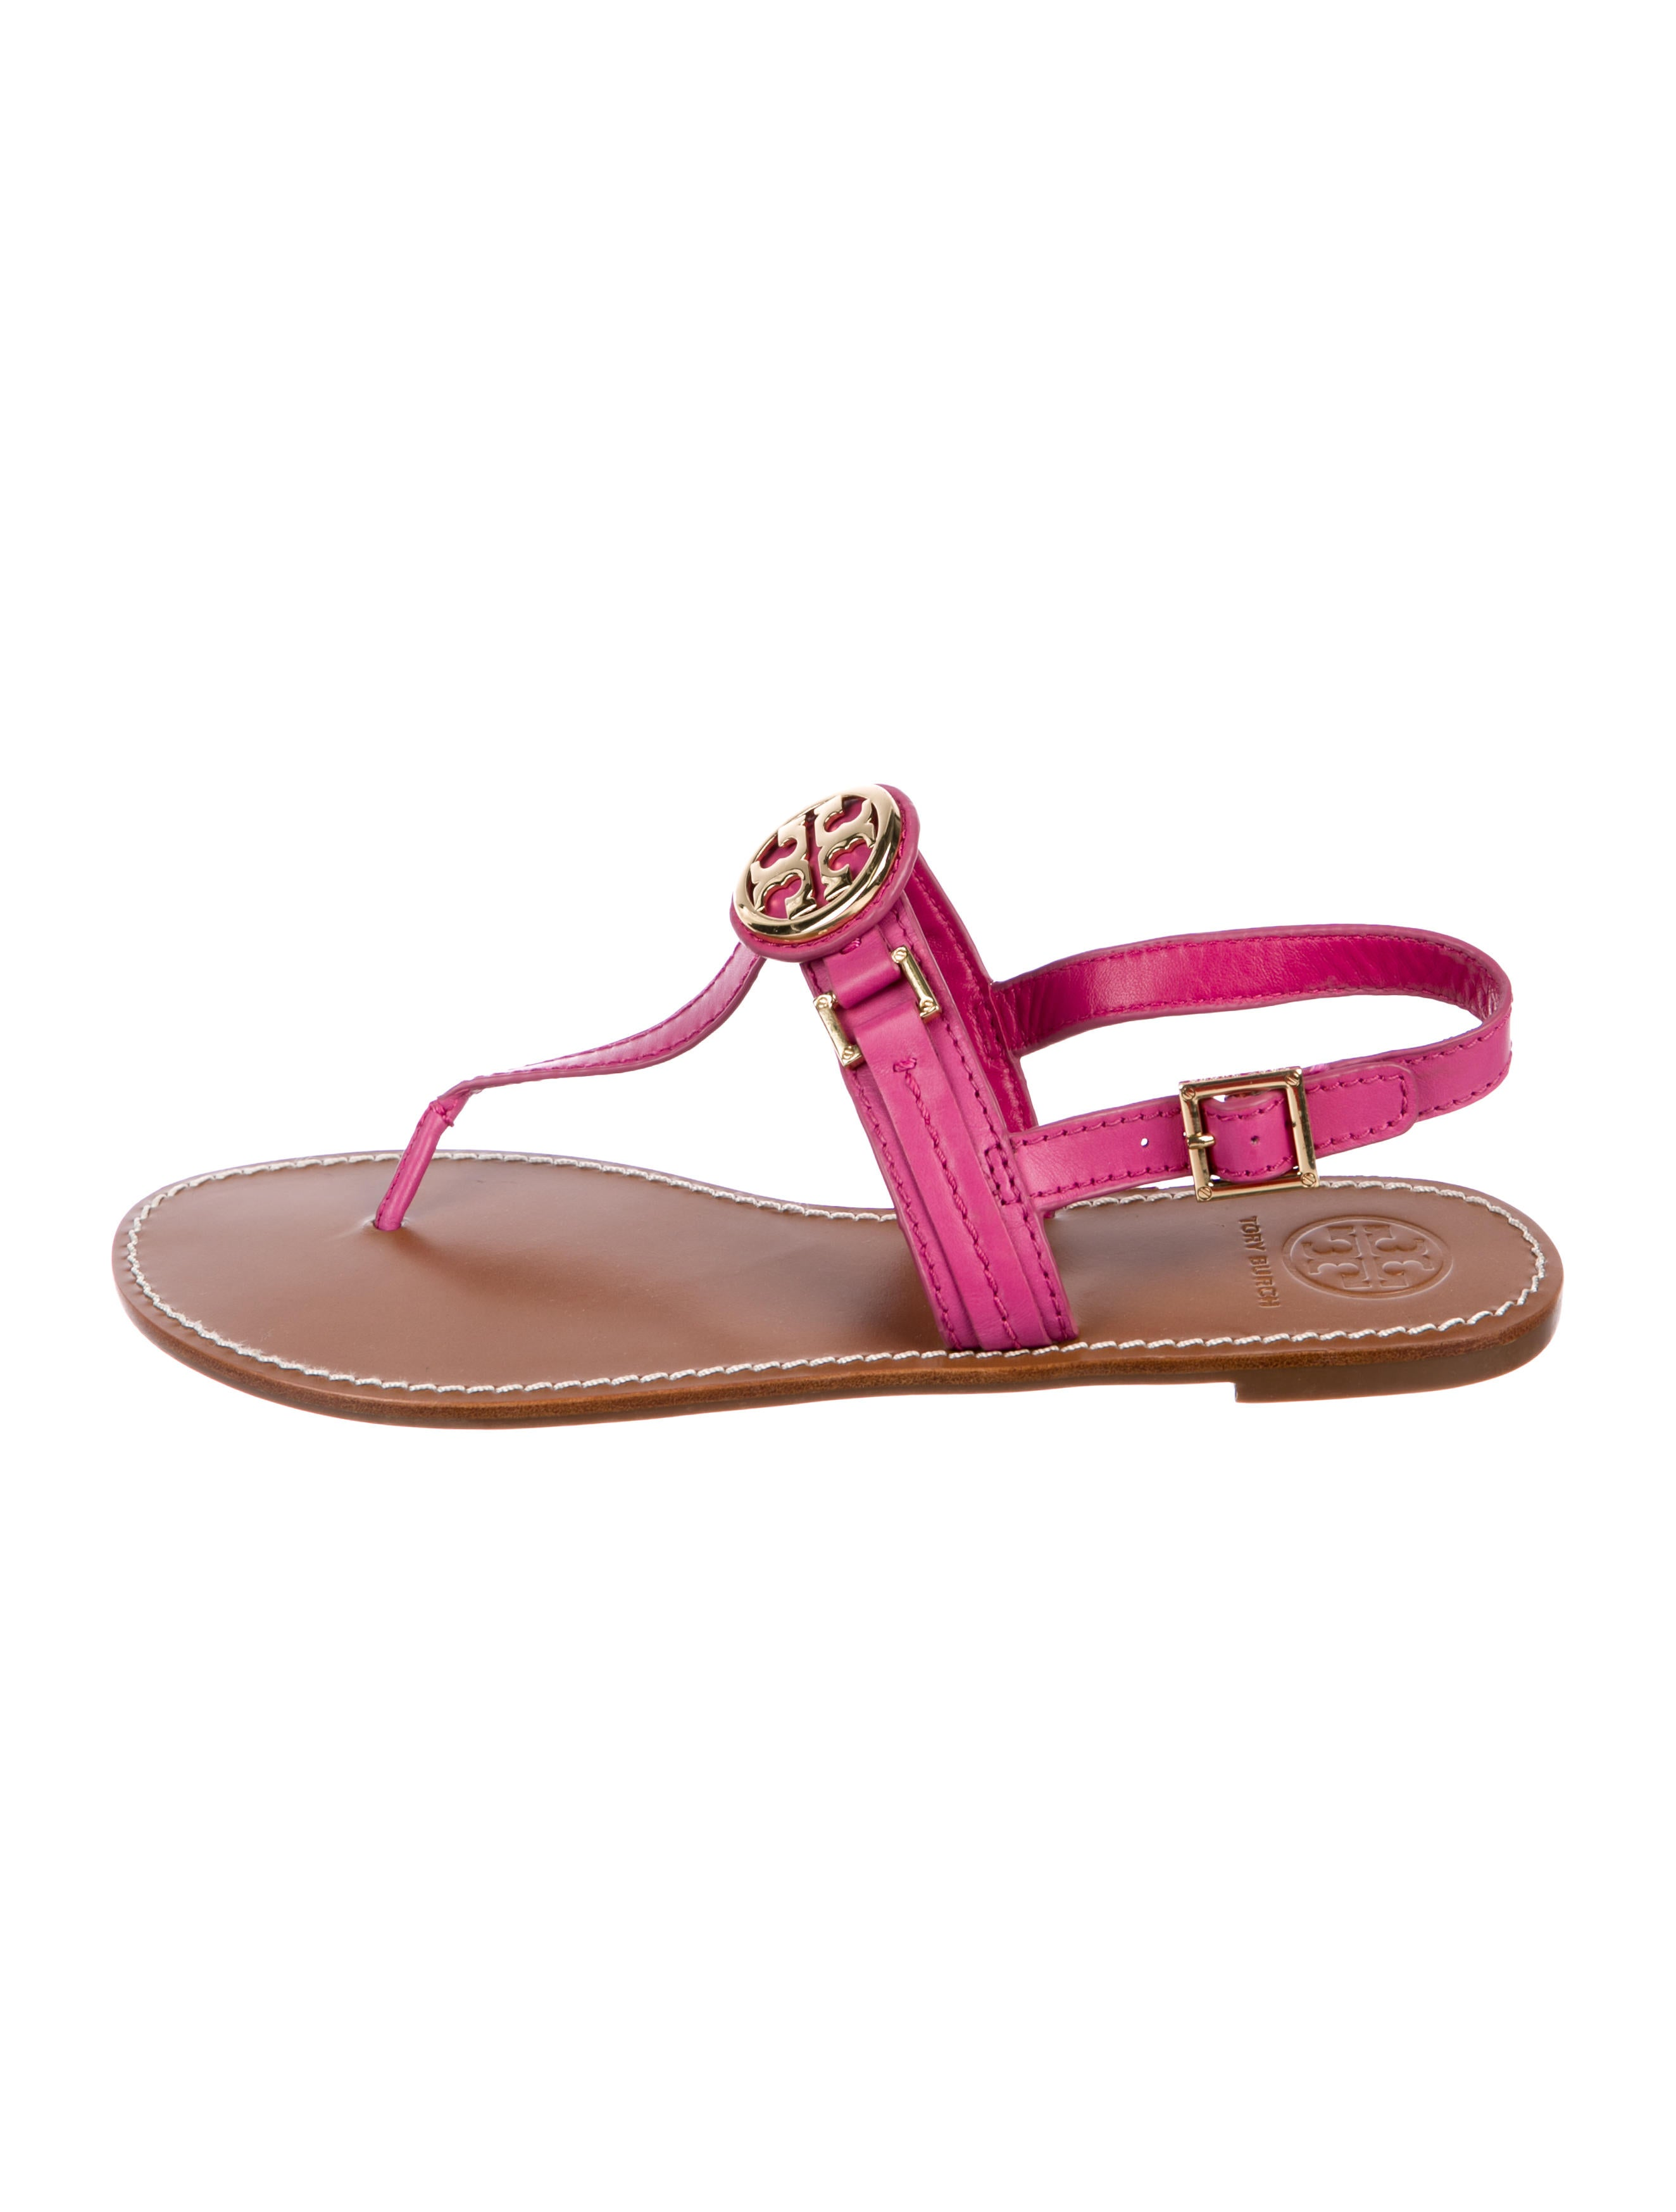 5162b702a66 Tory Burch Leather Logo Thong Sandals - Shoes - WTO181660